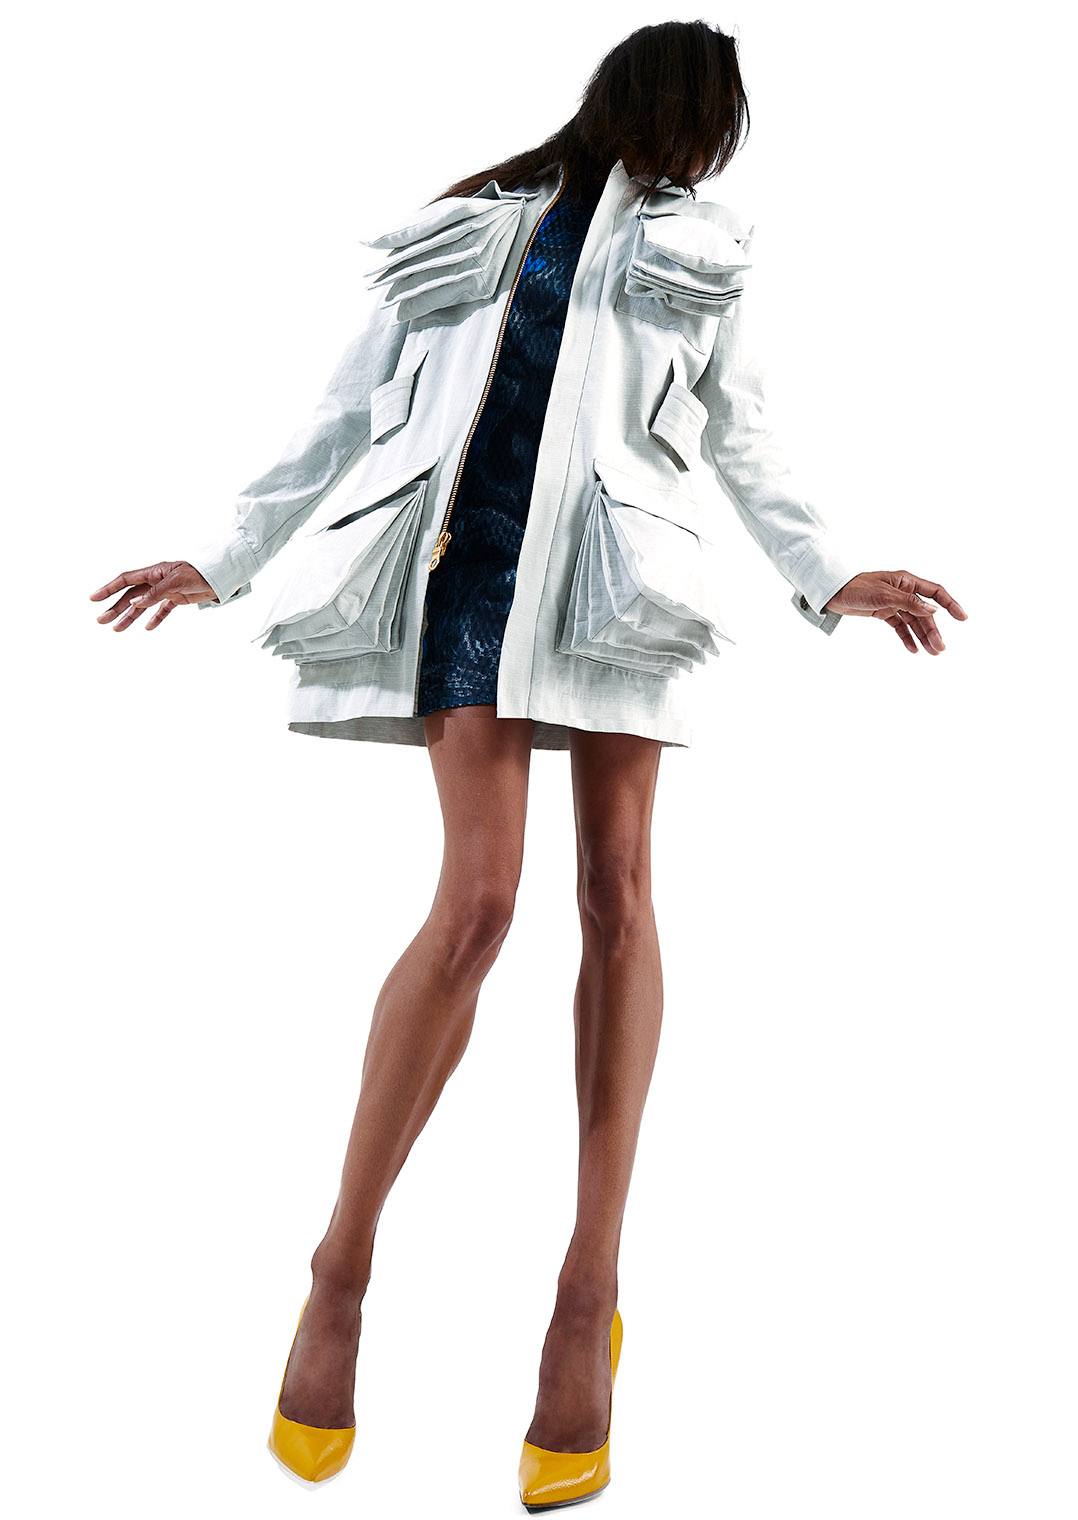 fashion model in white jacket in out of this world setting, concept and realization by photographer Robert Wilde, LA